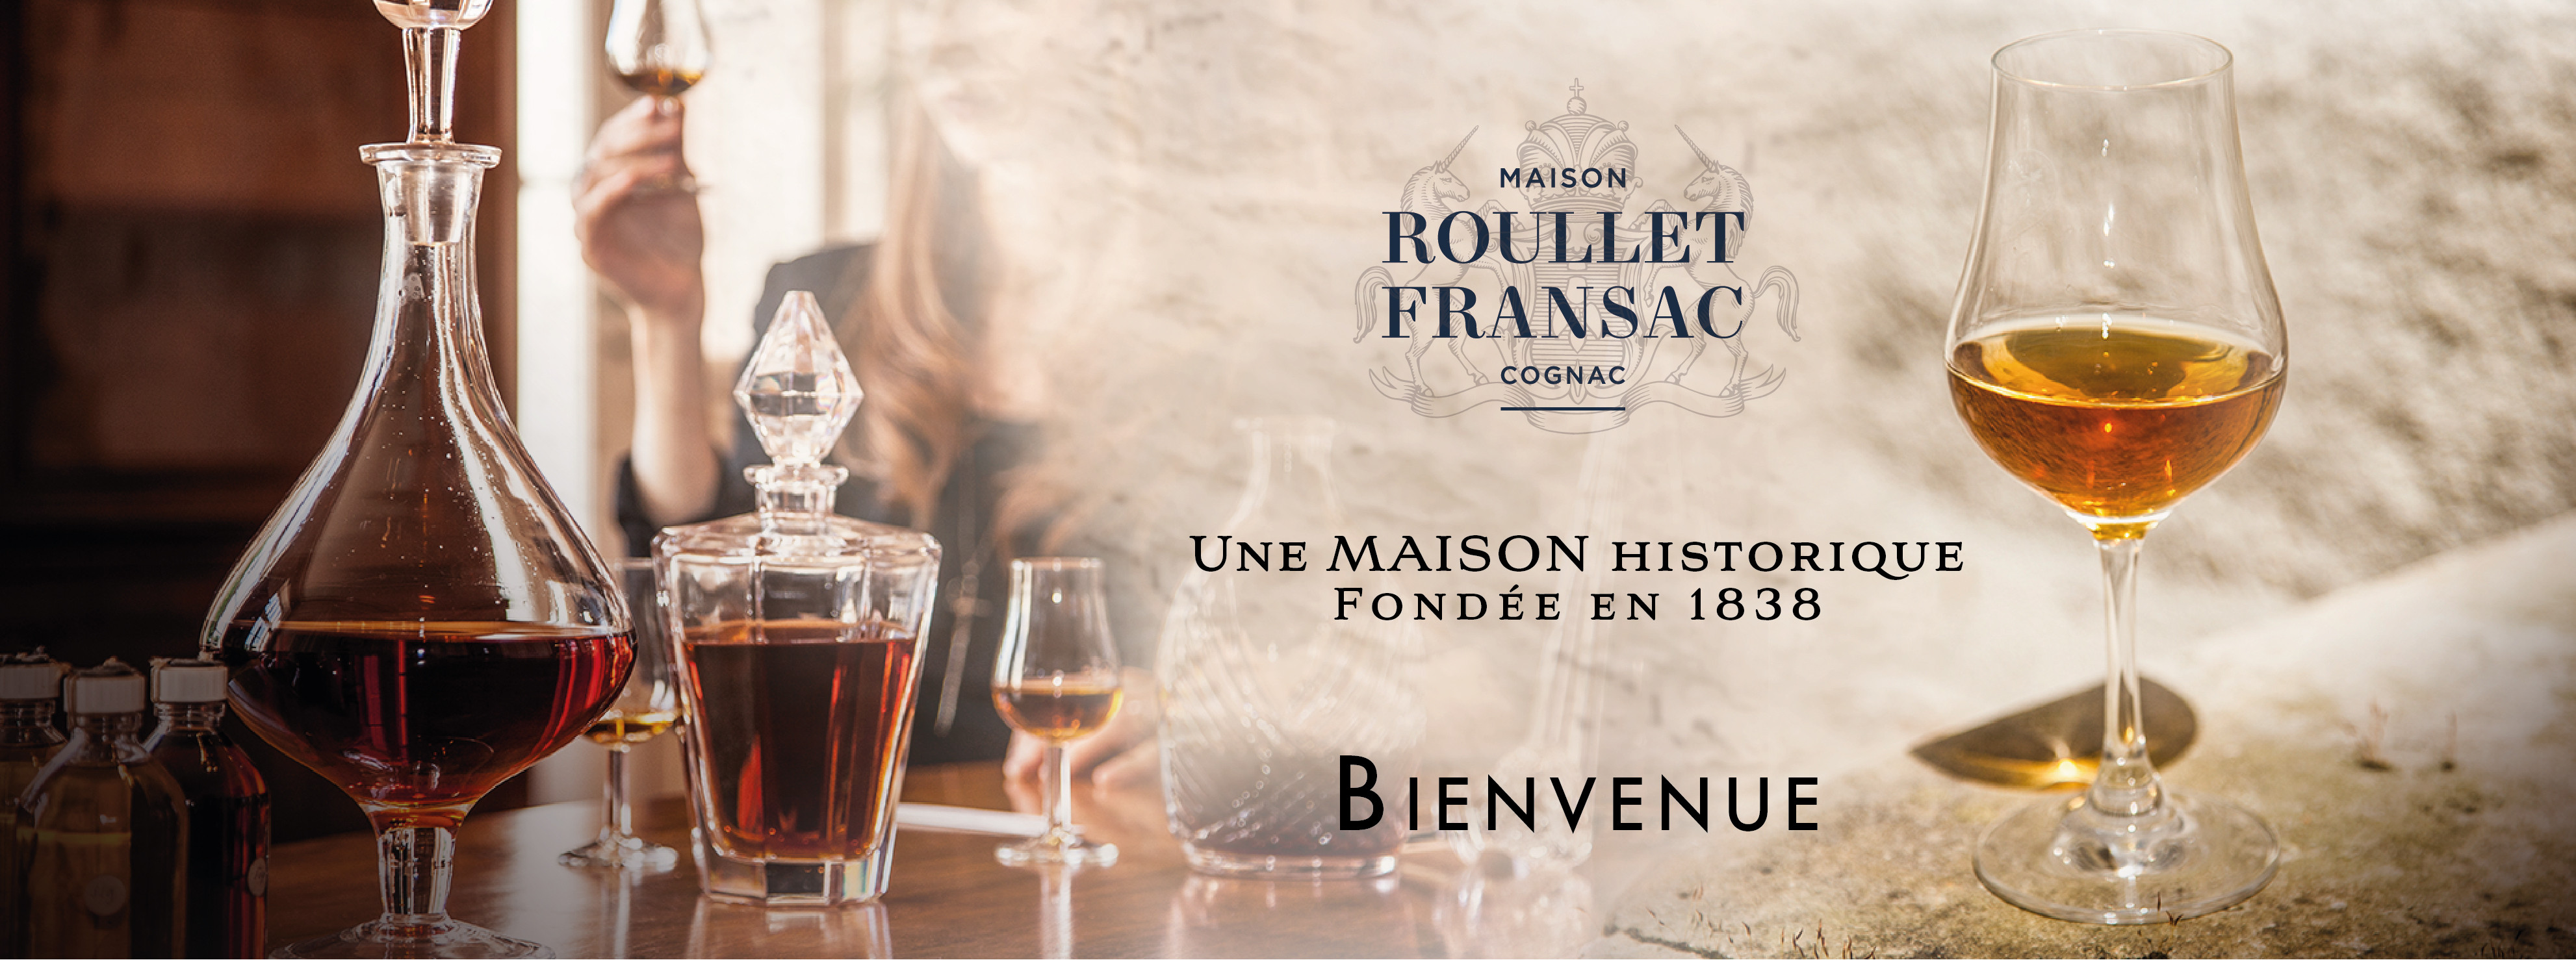 Roullet Fransac: A historic house founded in 1838